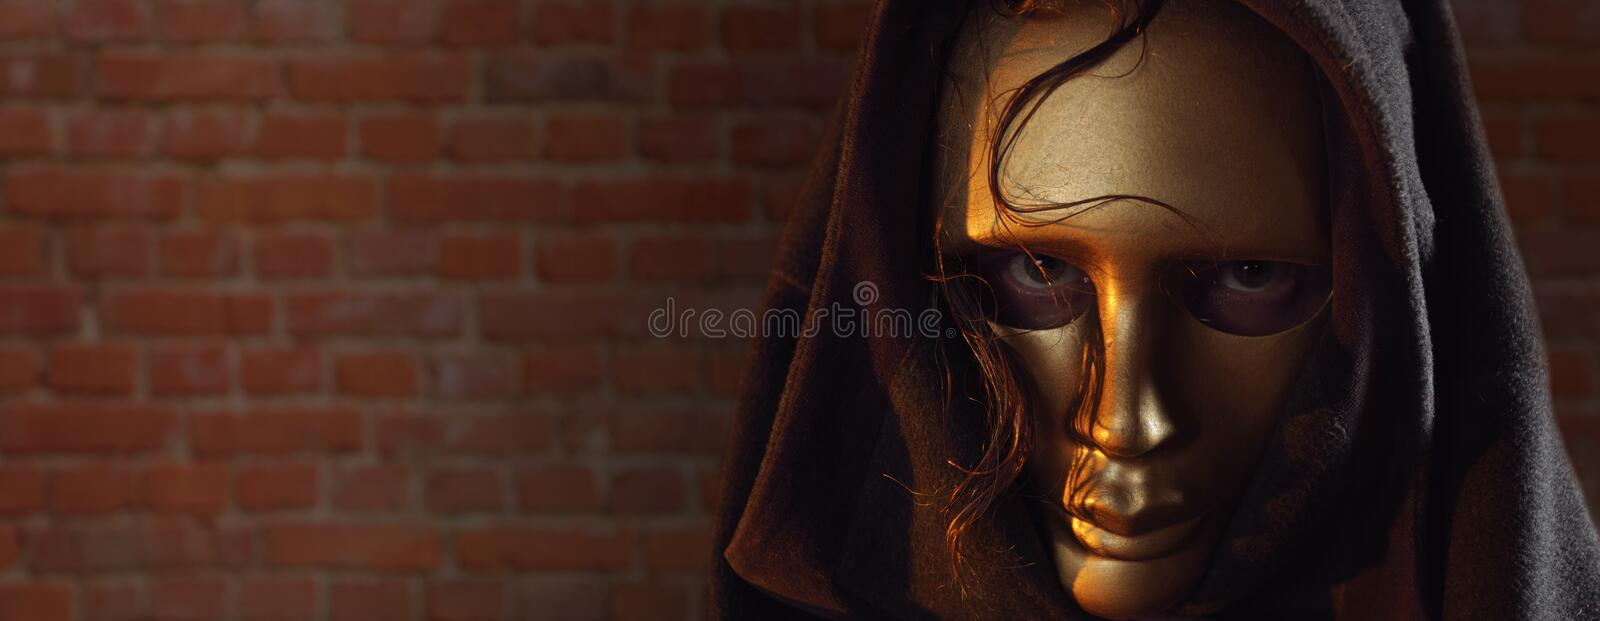 Masque d'or. image stock